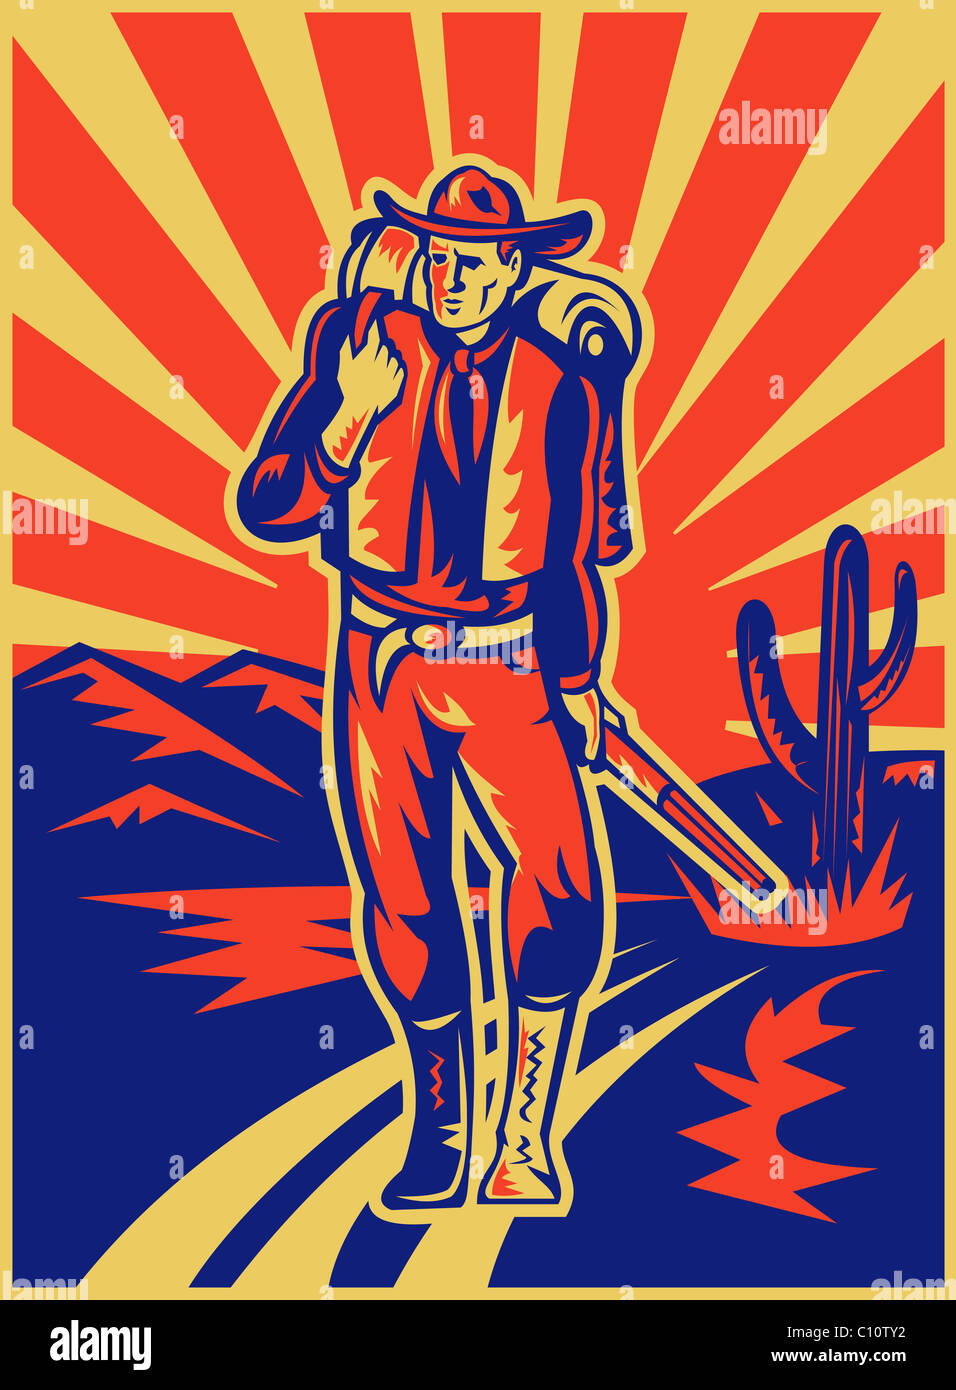 retro style illustration of a Cowboy carrying backpack and rifle walking with desert mountains and cactus in background Stock Photo